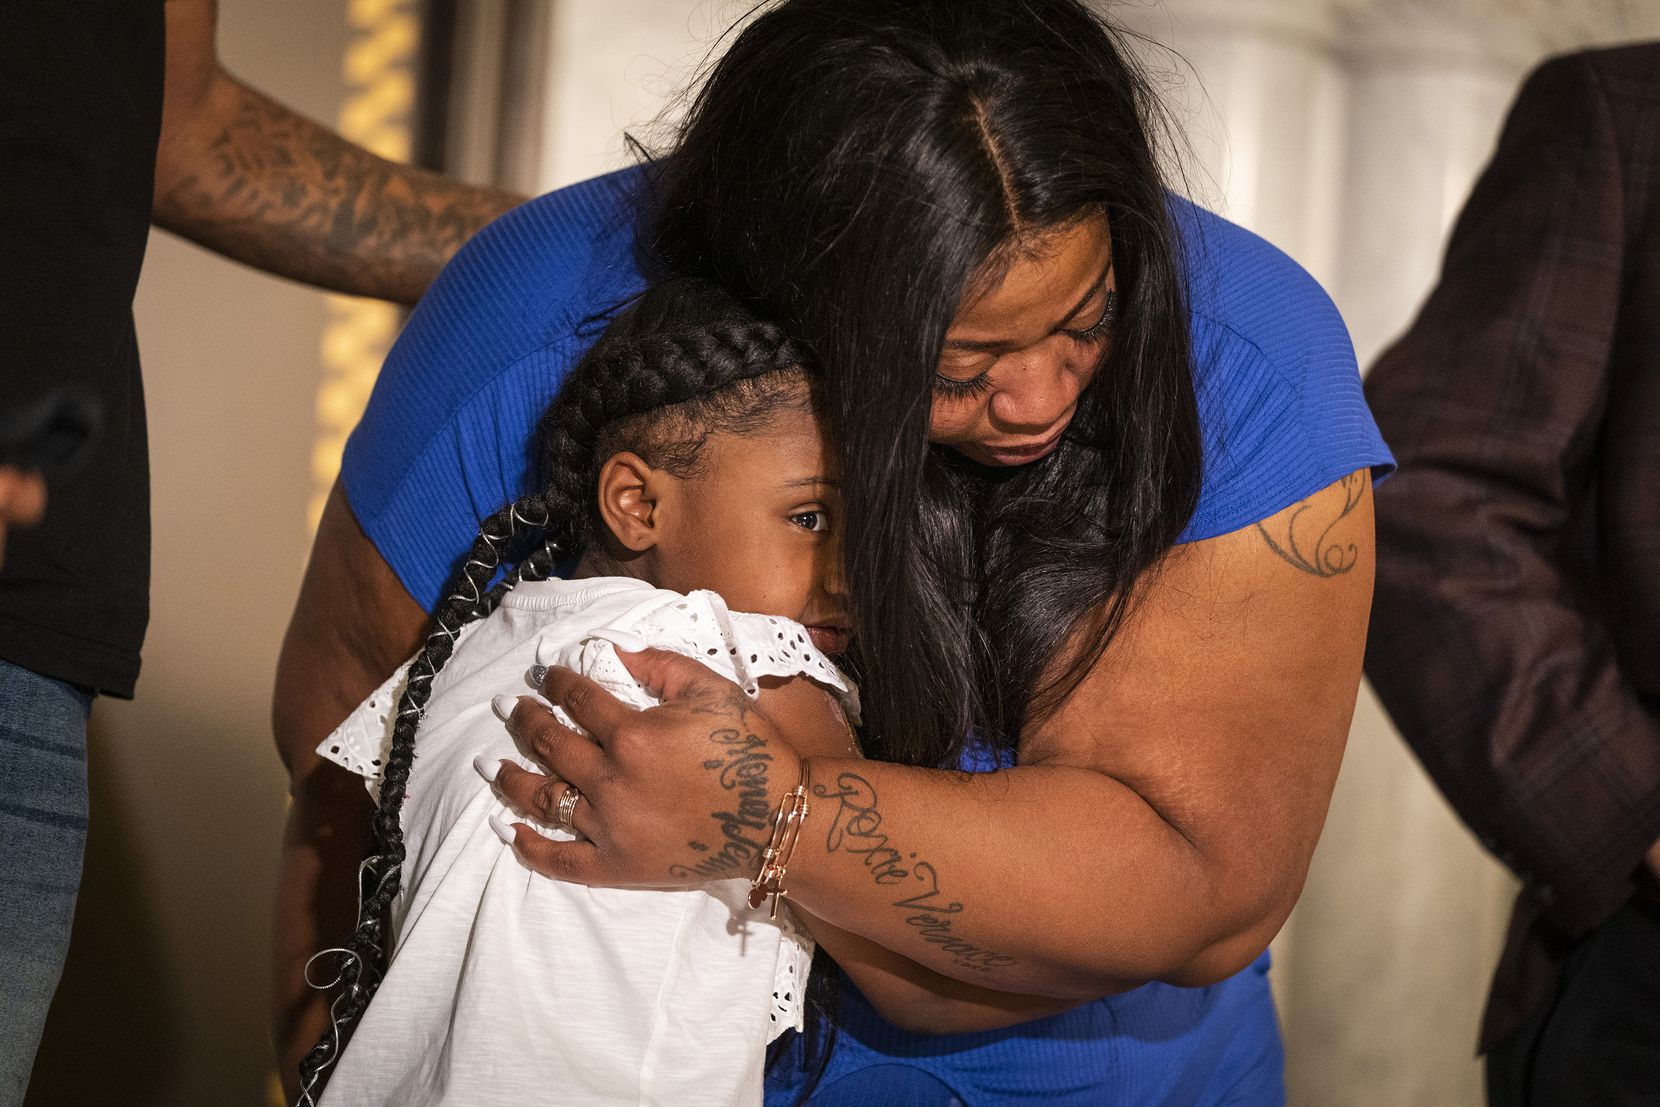 Gianna Floyd hugged her mother, Roxie Washington, during a June 2 news conference in Minneapolis.